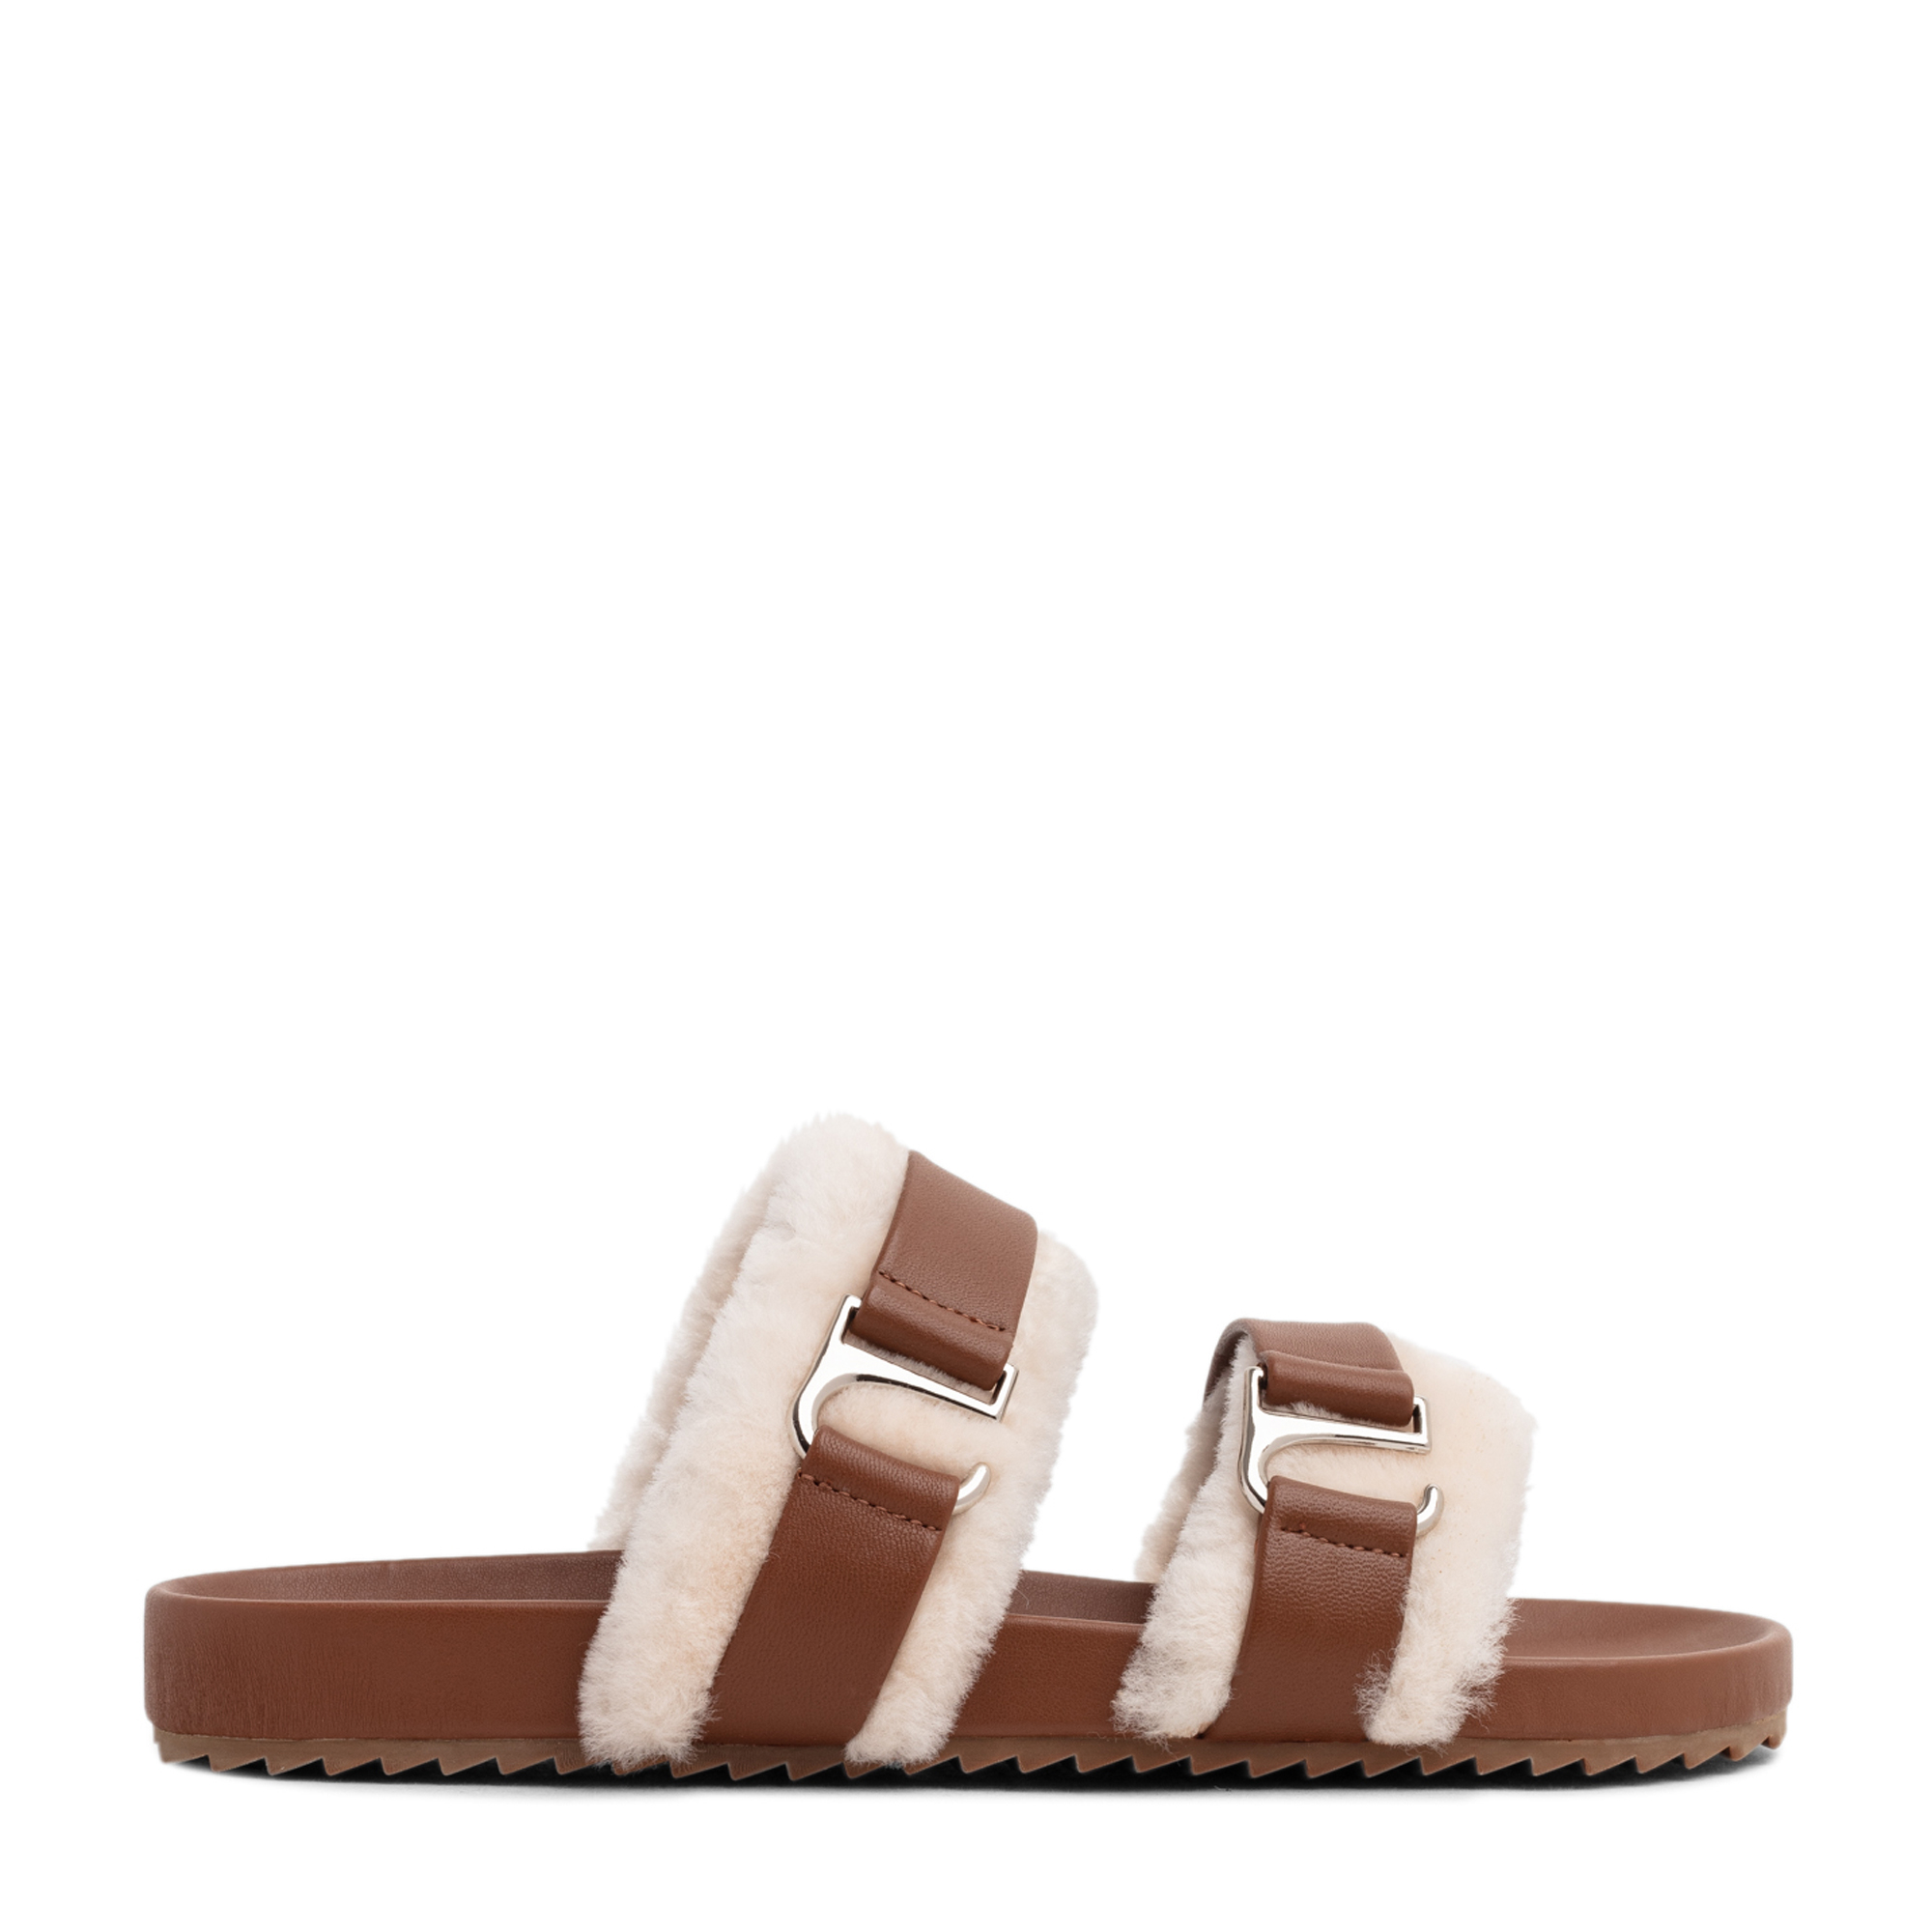 Dalley sandals